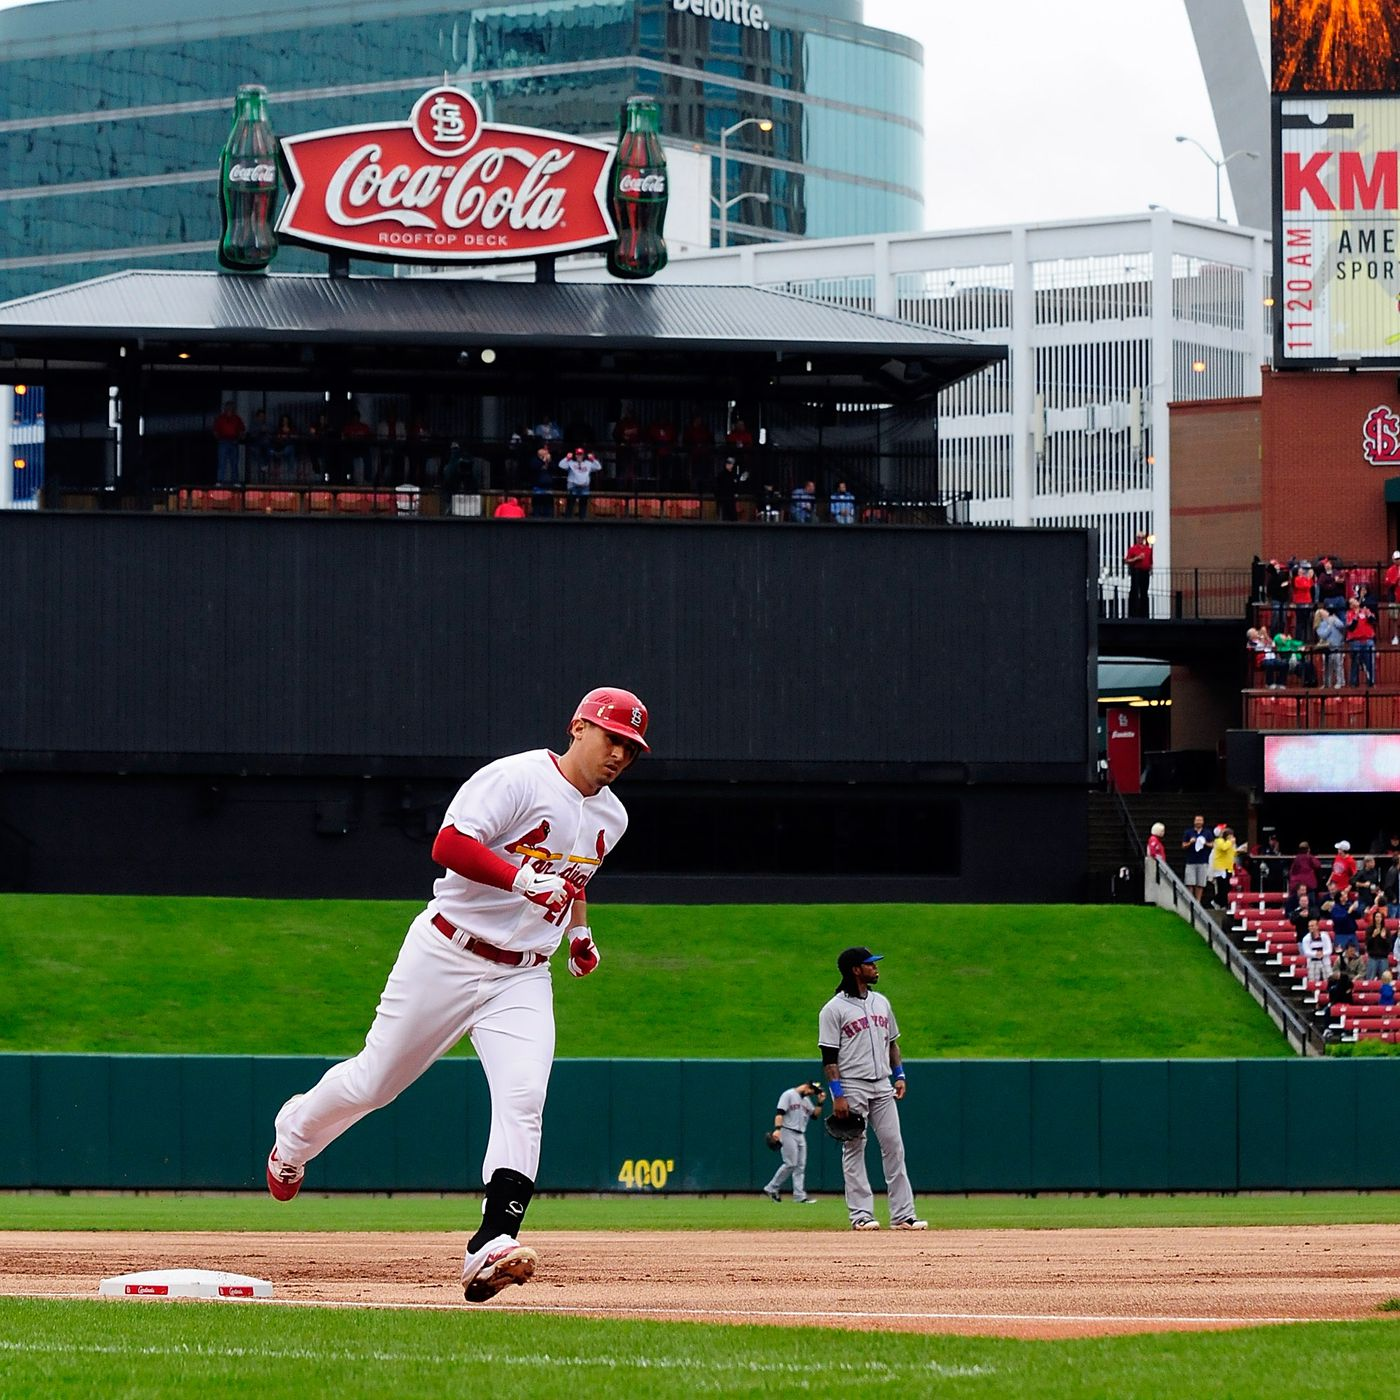 On This Day In 2013 The Cardinals Signed Allen Craig To An